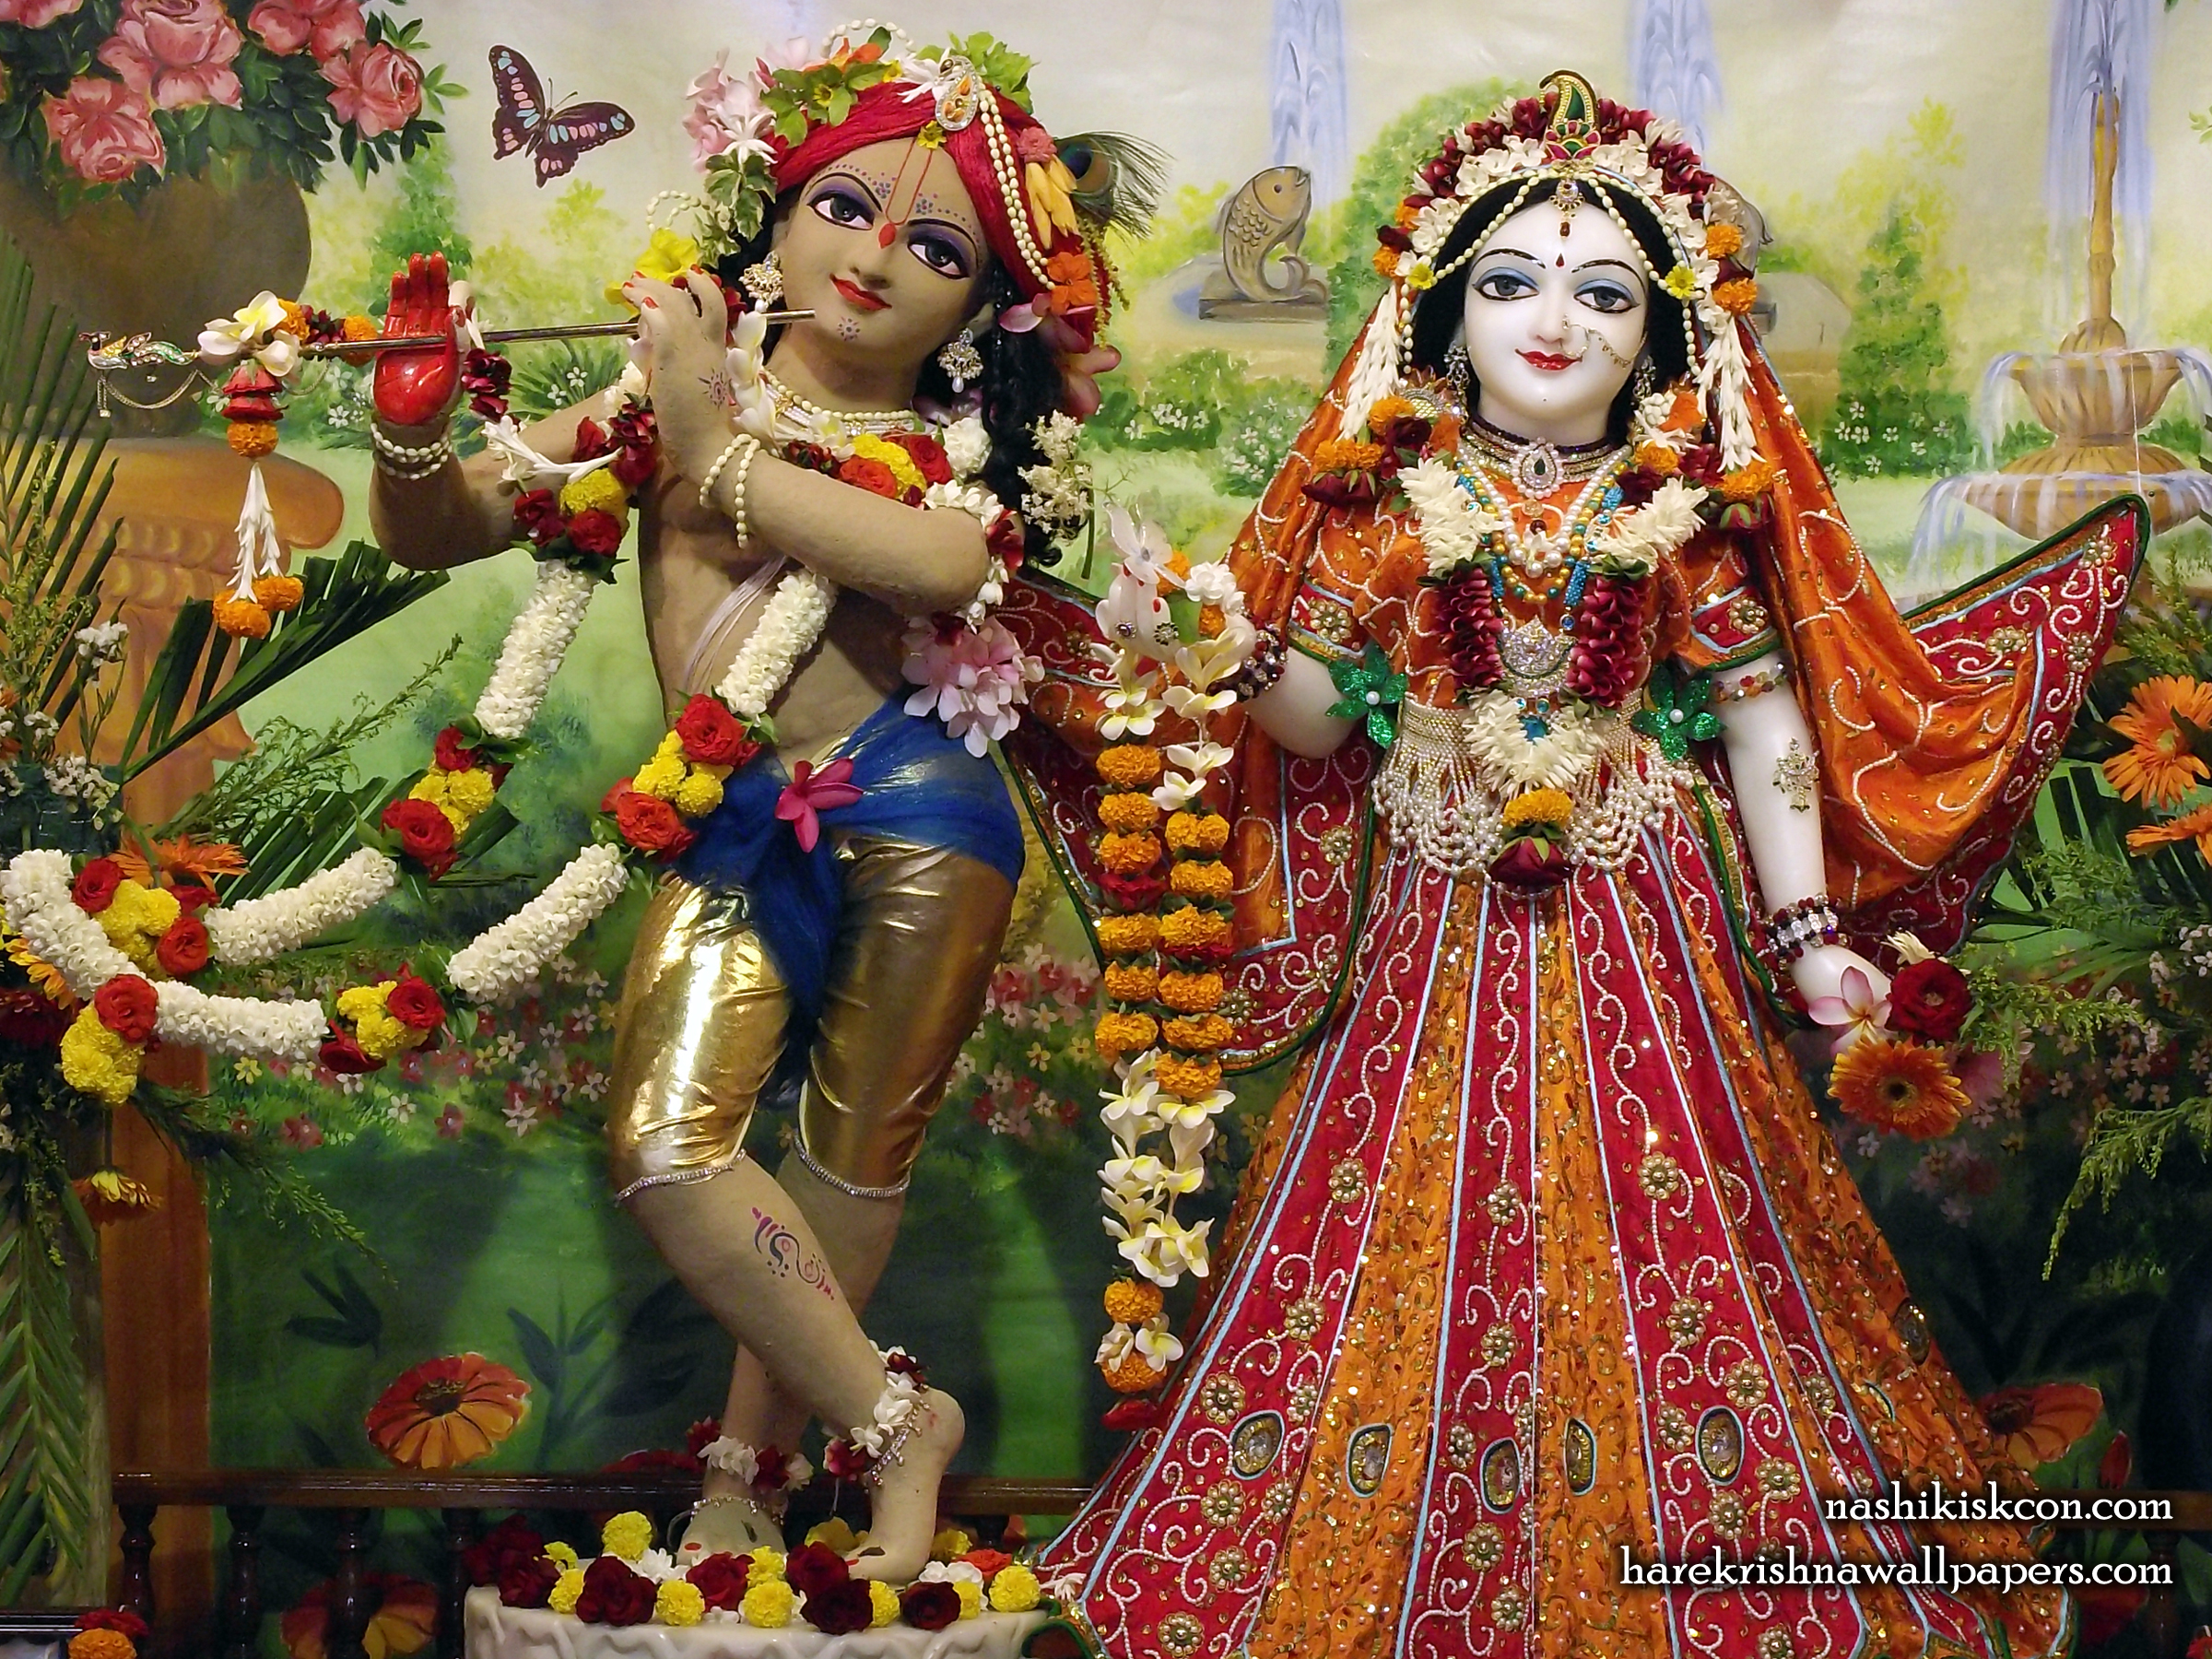 Sri Sri Radha Madan Gopal Wallpaper (011) Size 2400x1800 Download